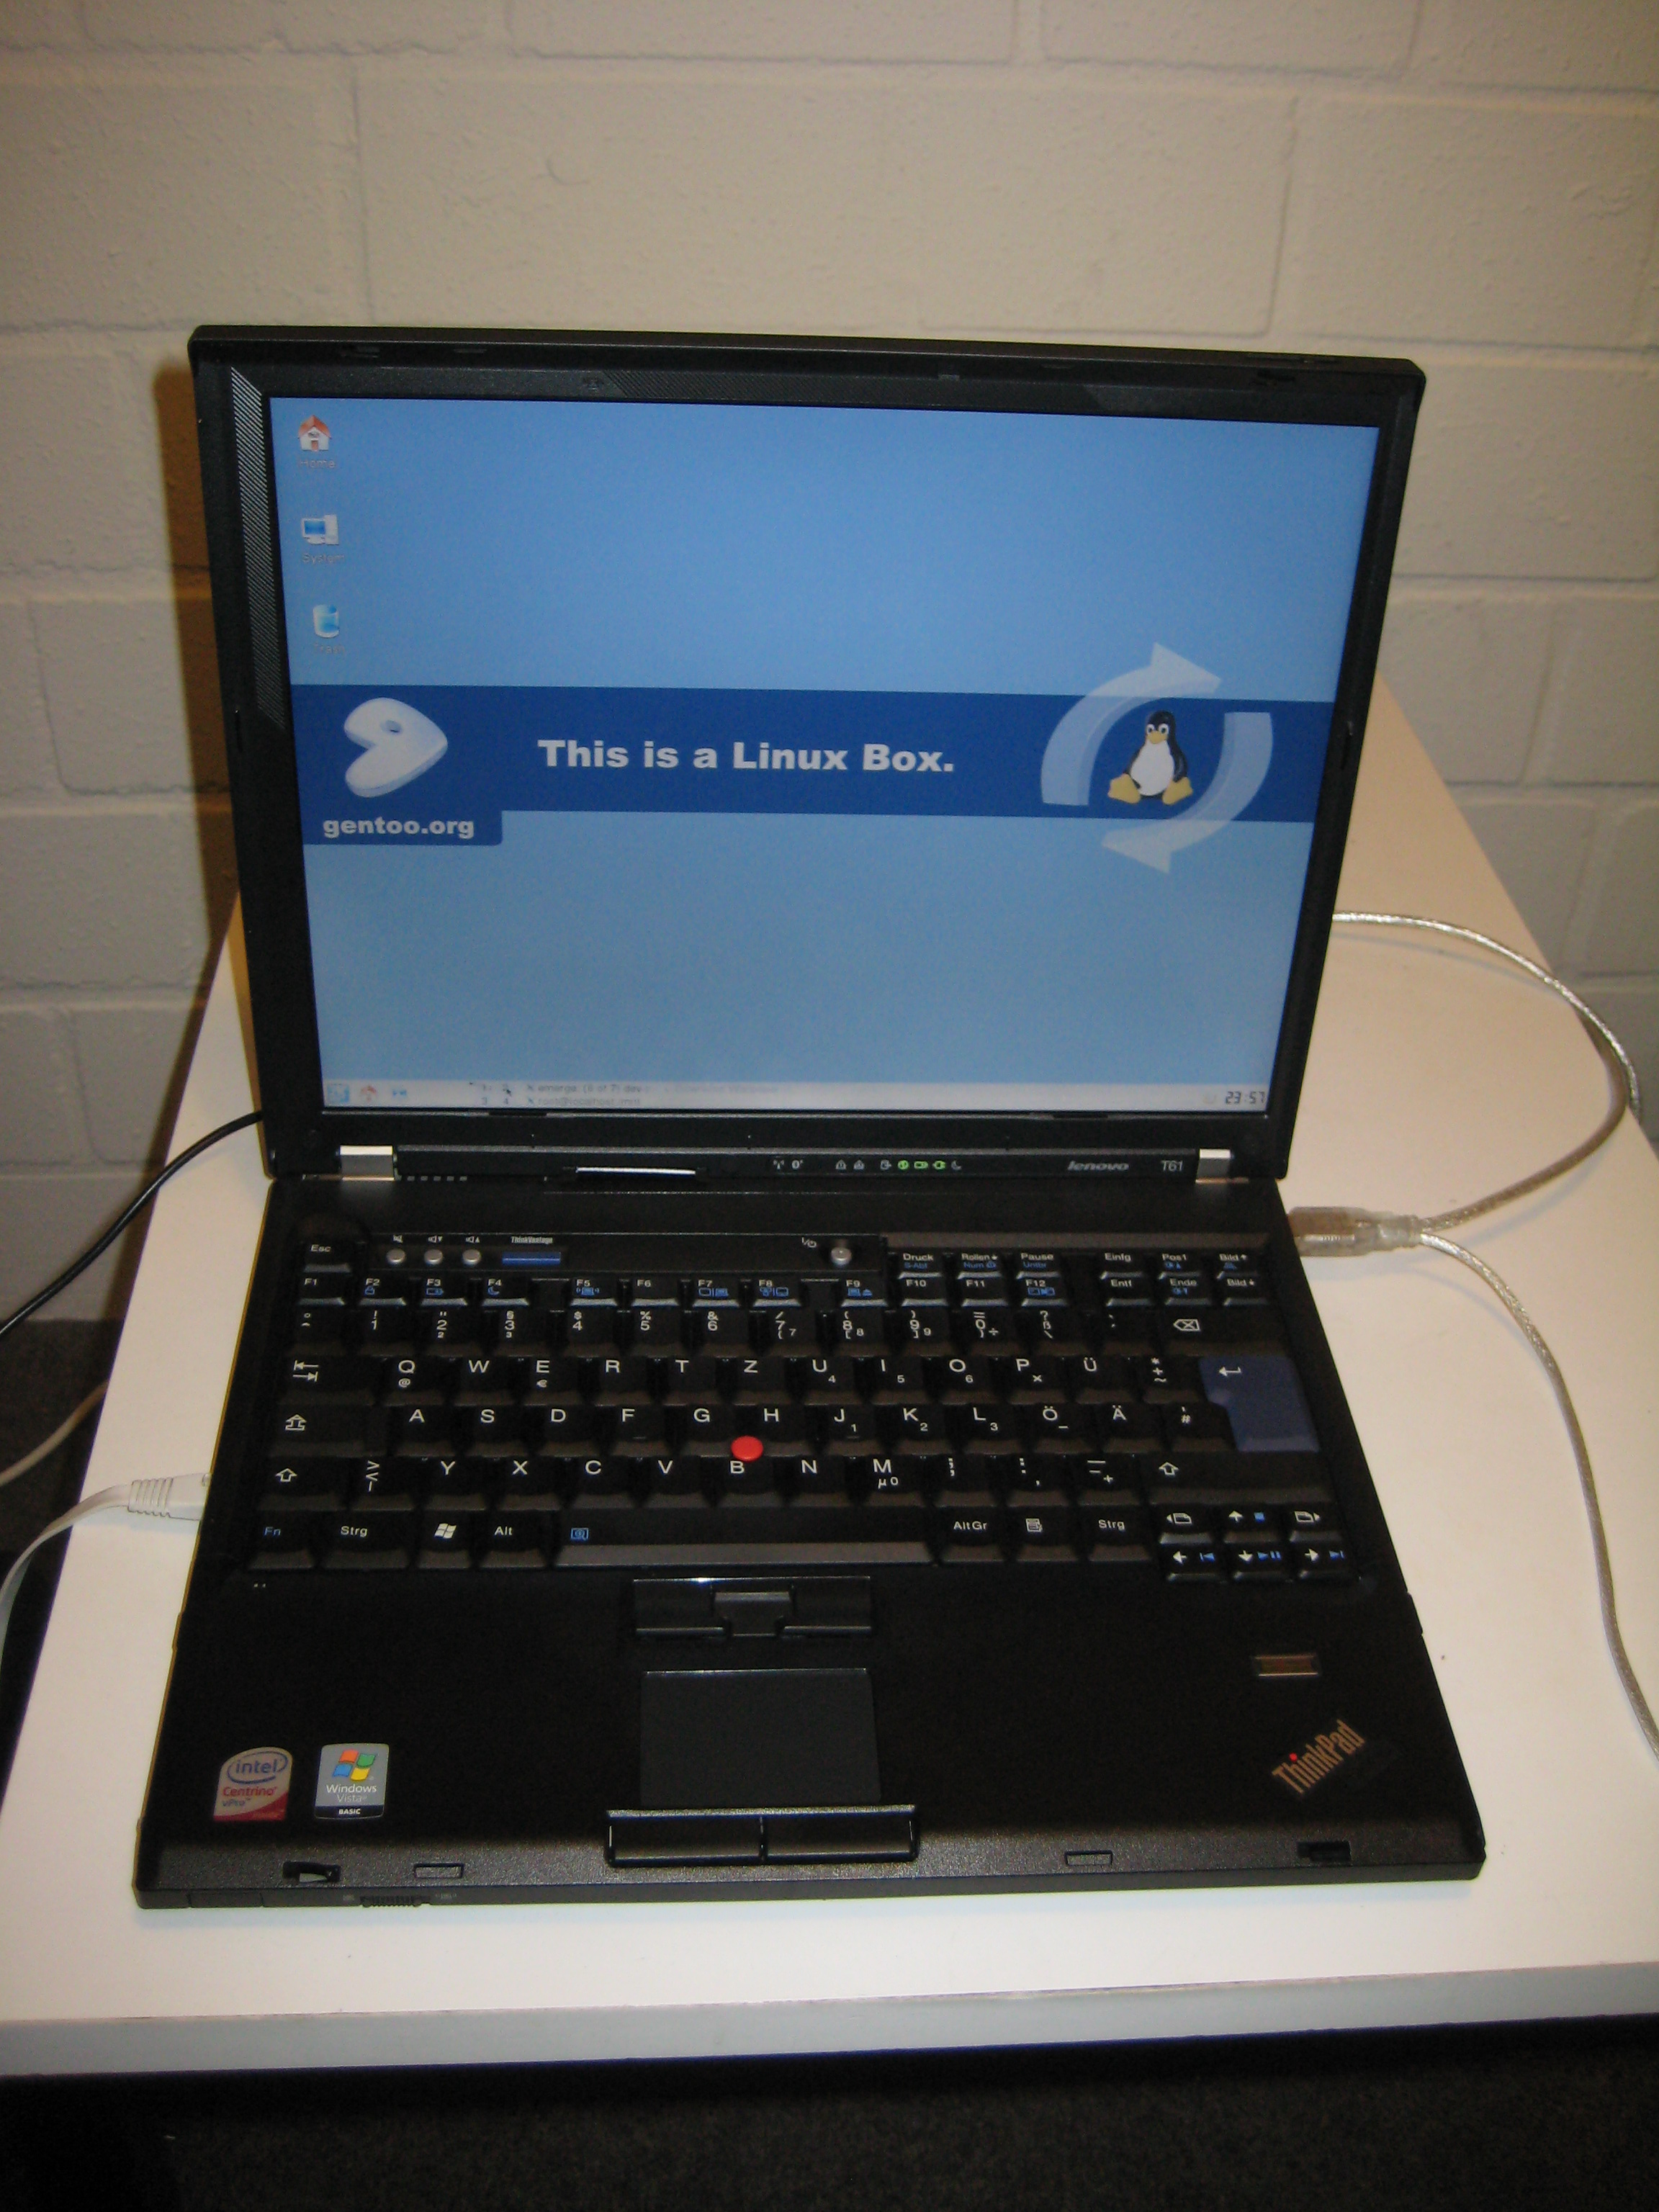 New T61 Laptop (8895WFJ) - Hanno's blog